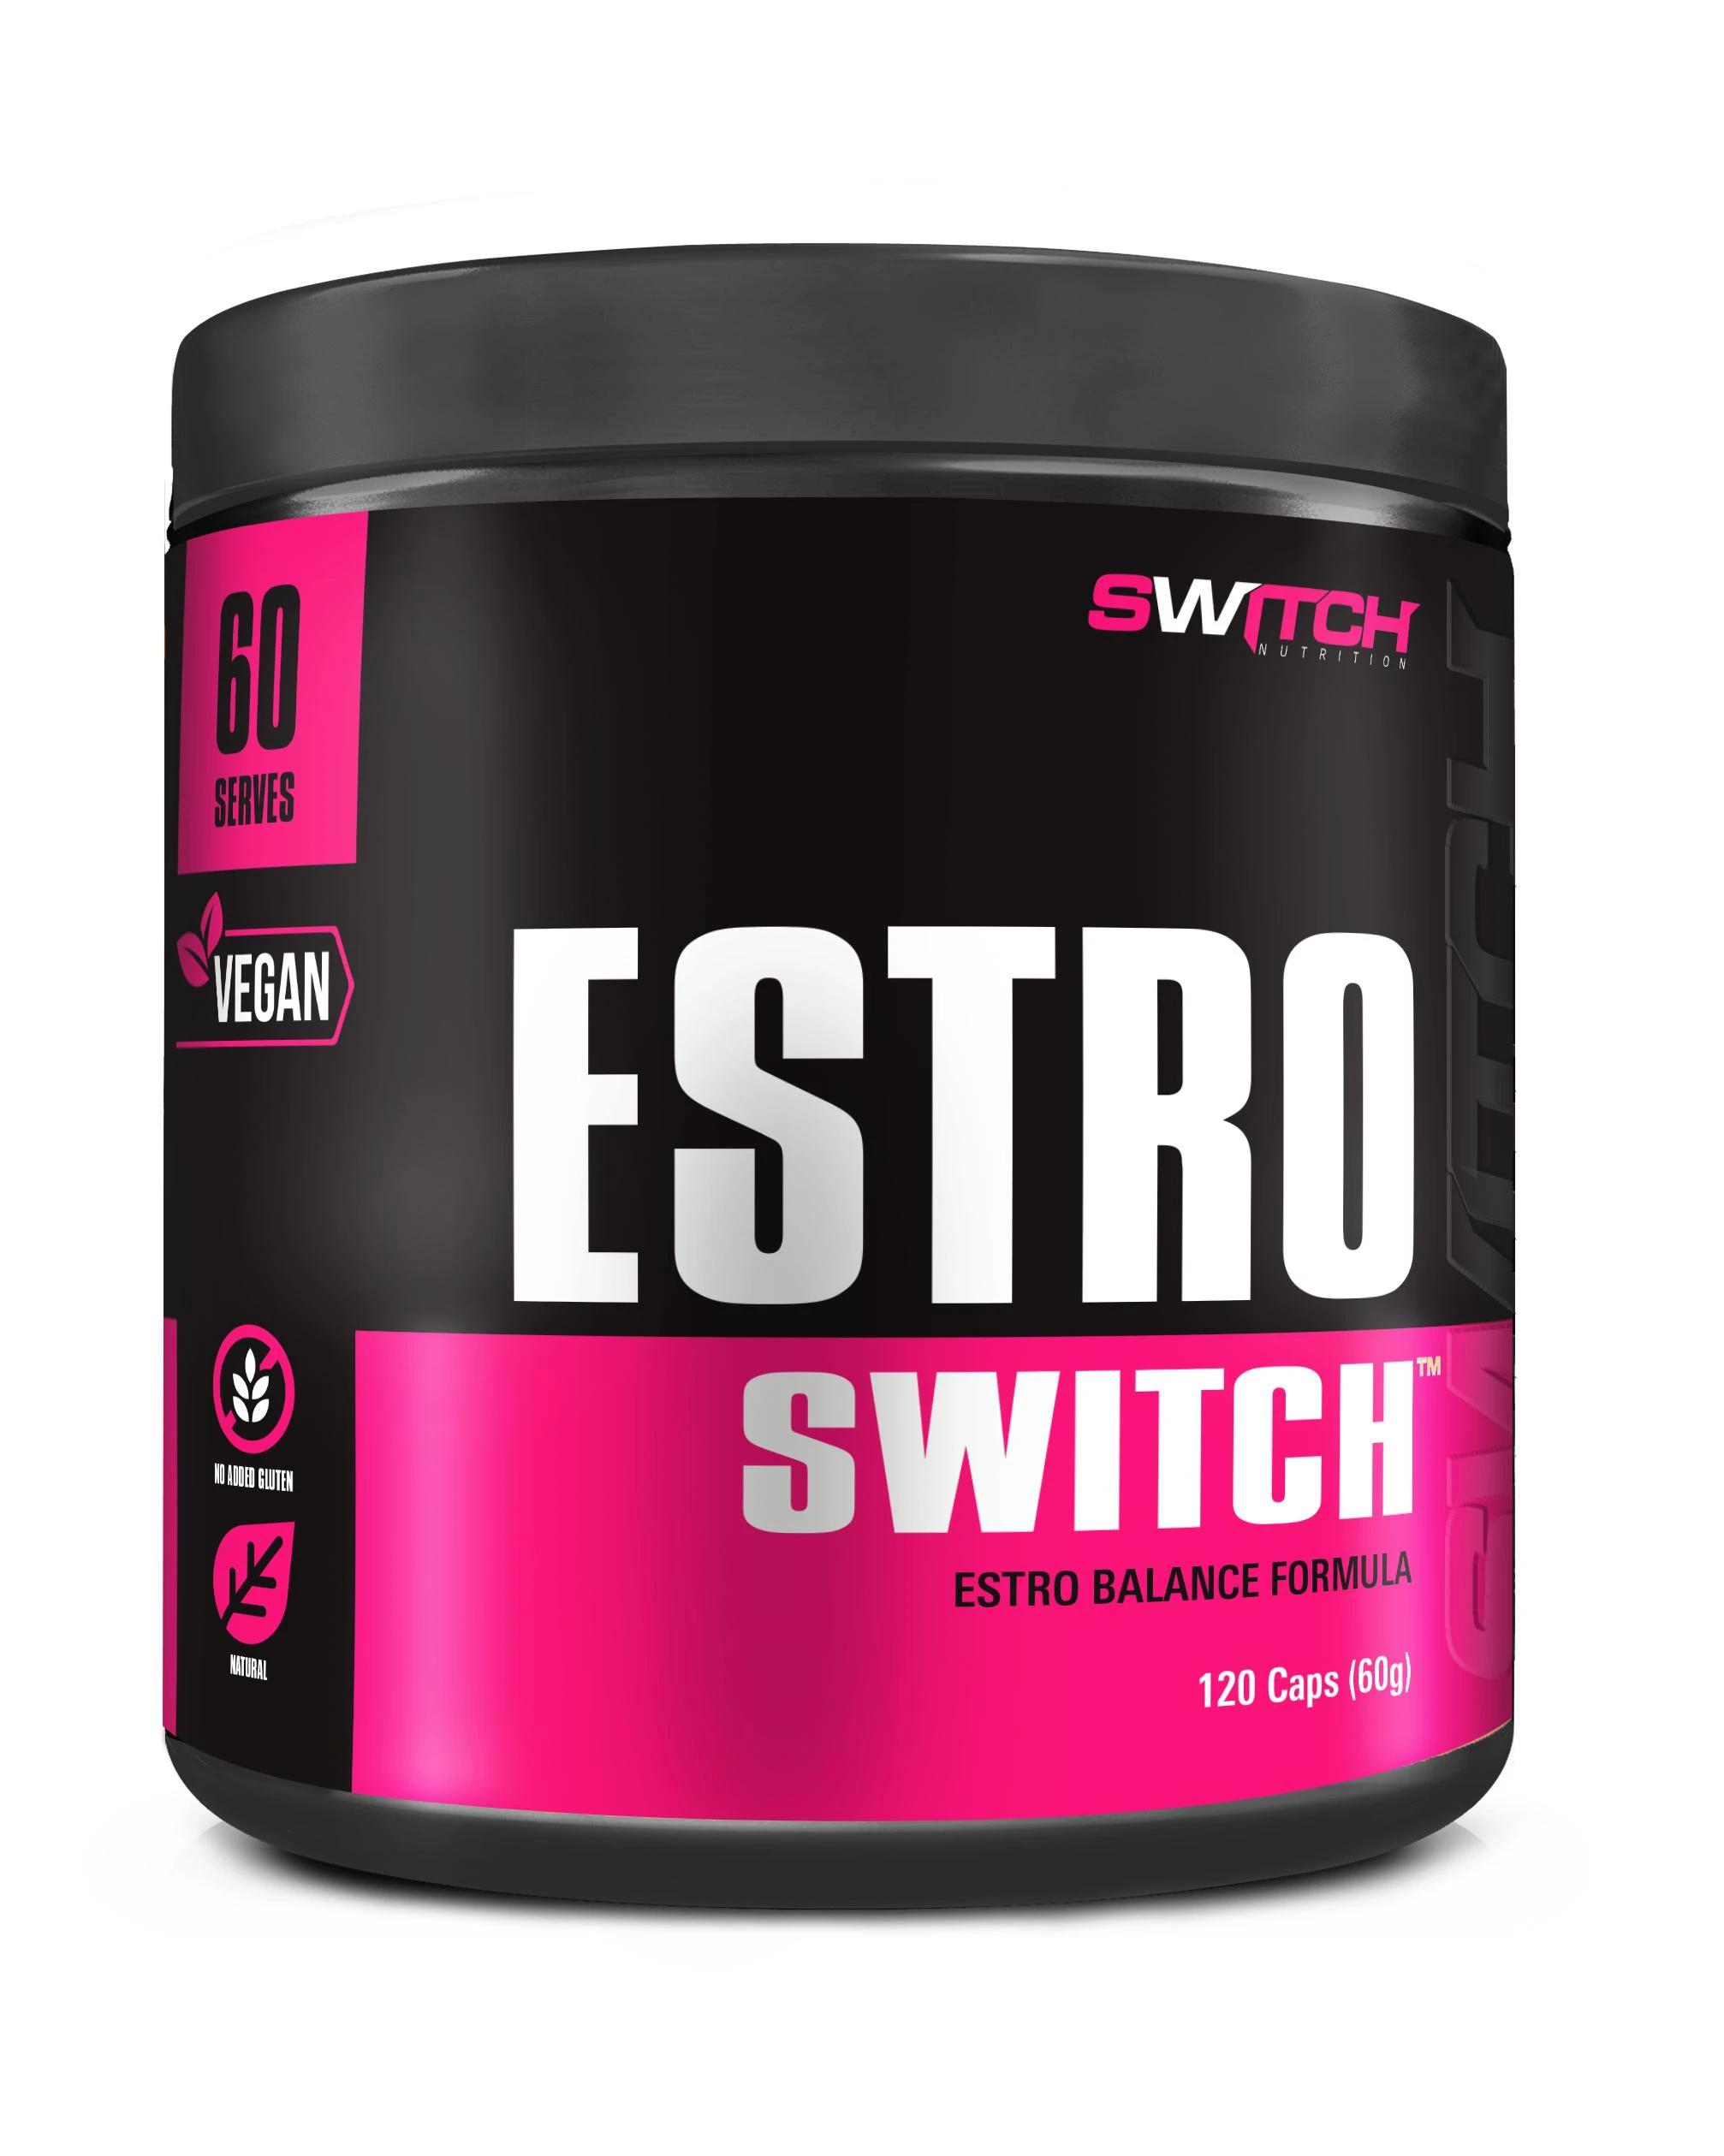 Switch Nutrition Estro Switch-Vitamin and Minerals - Womens Health-Switch Nutrition-120 CAPSULES-Thrive Health and Nutrition